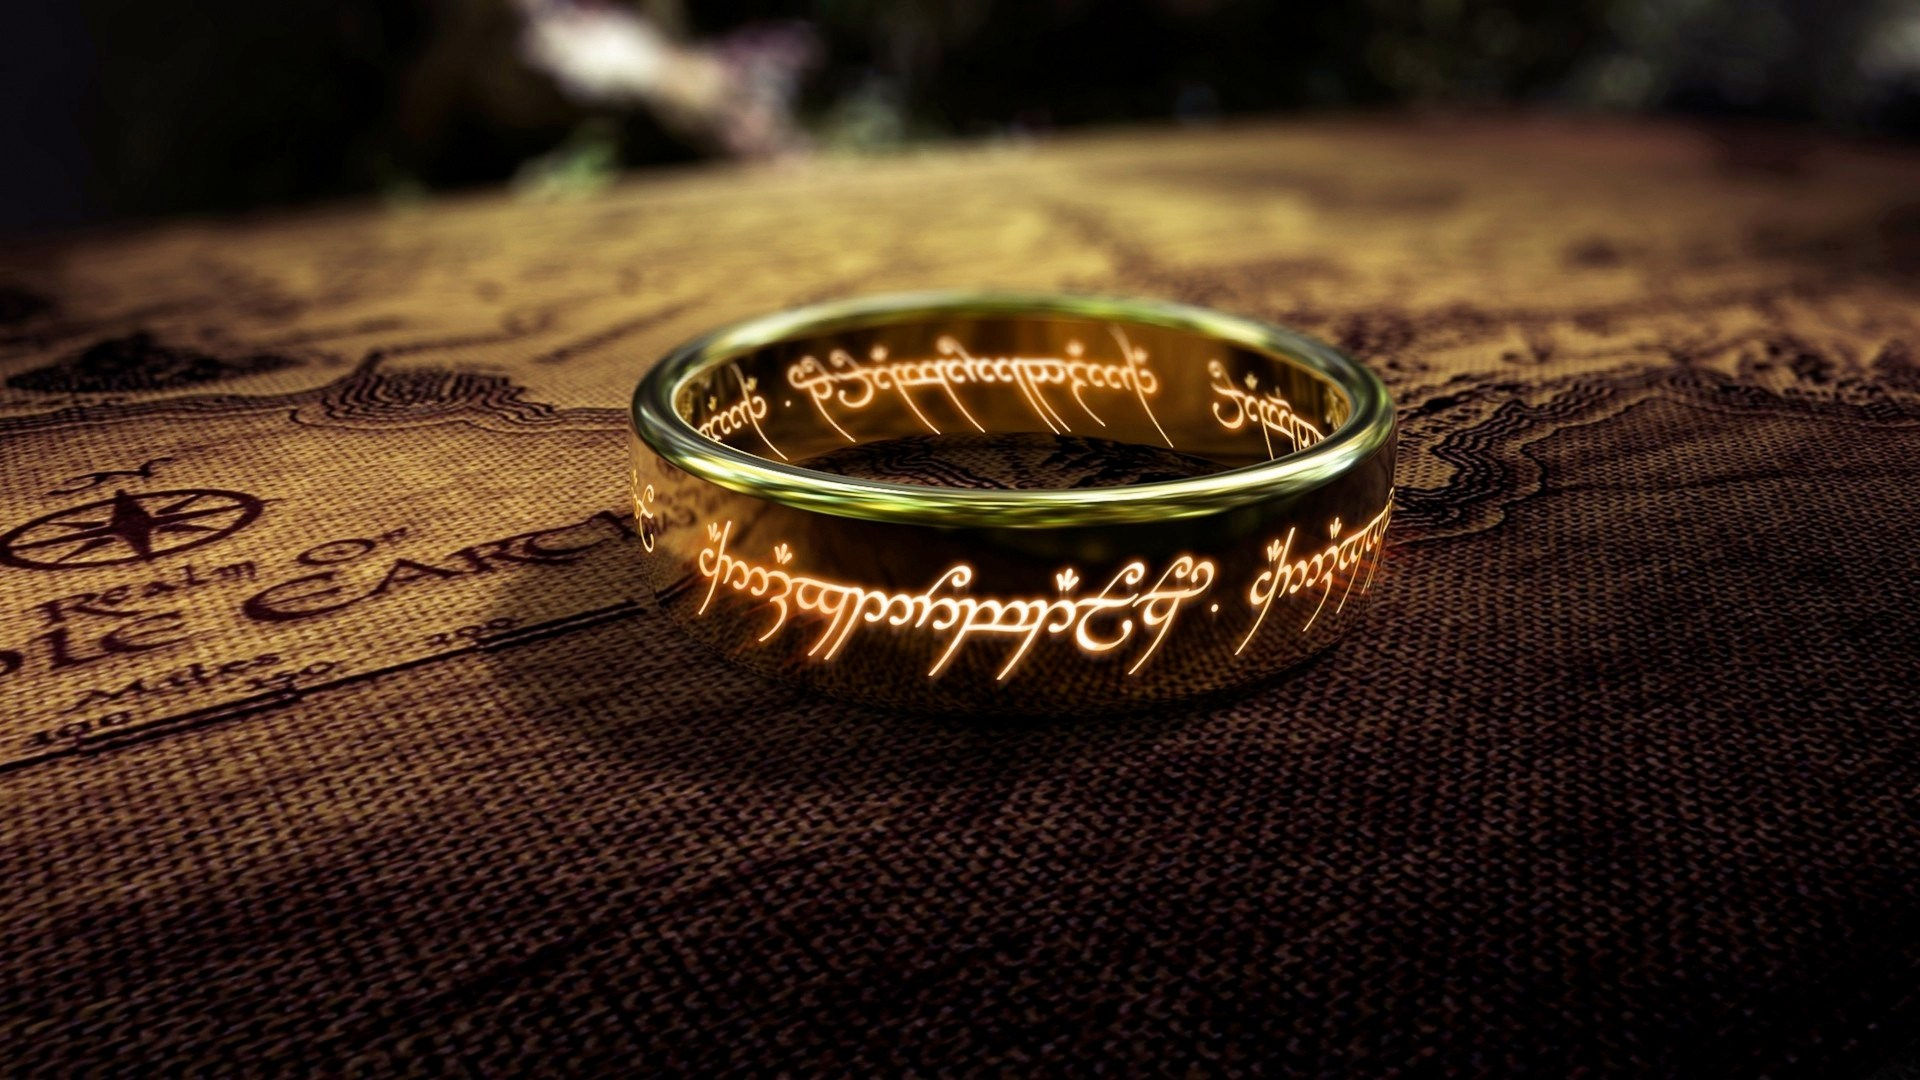 Amazon secures rights to produce multi-season 'The Lord of the Rings' TV series